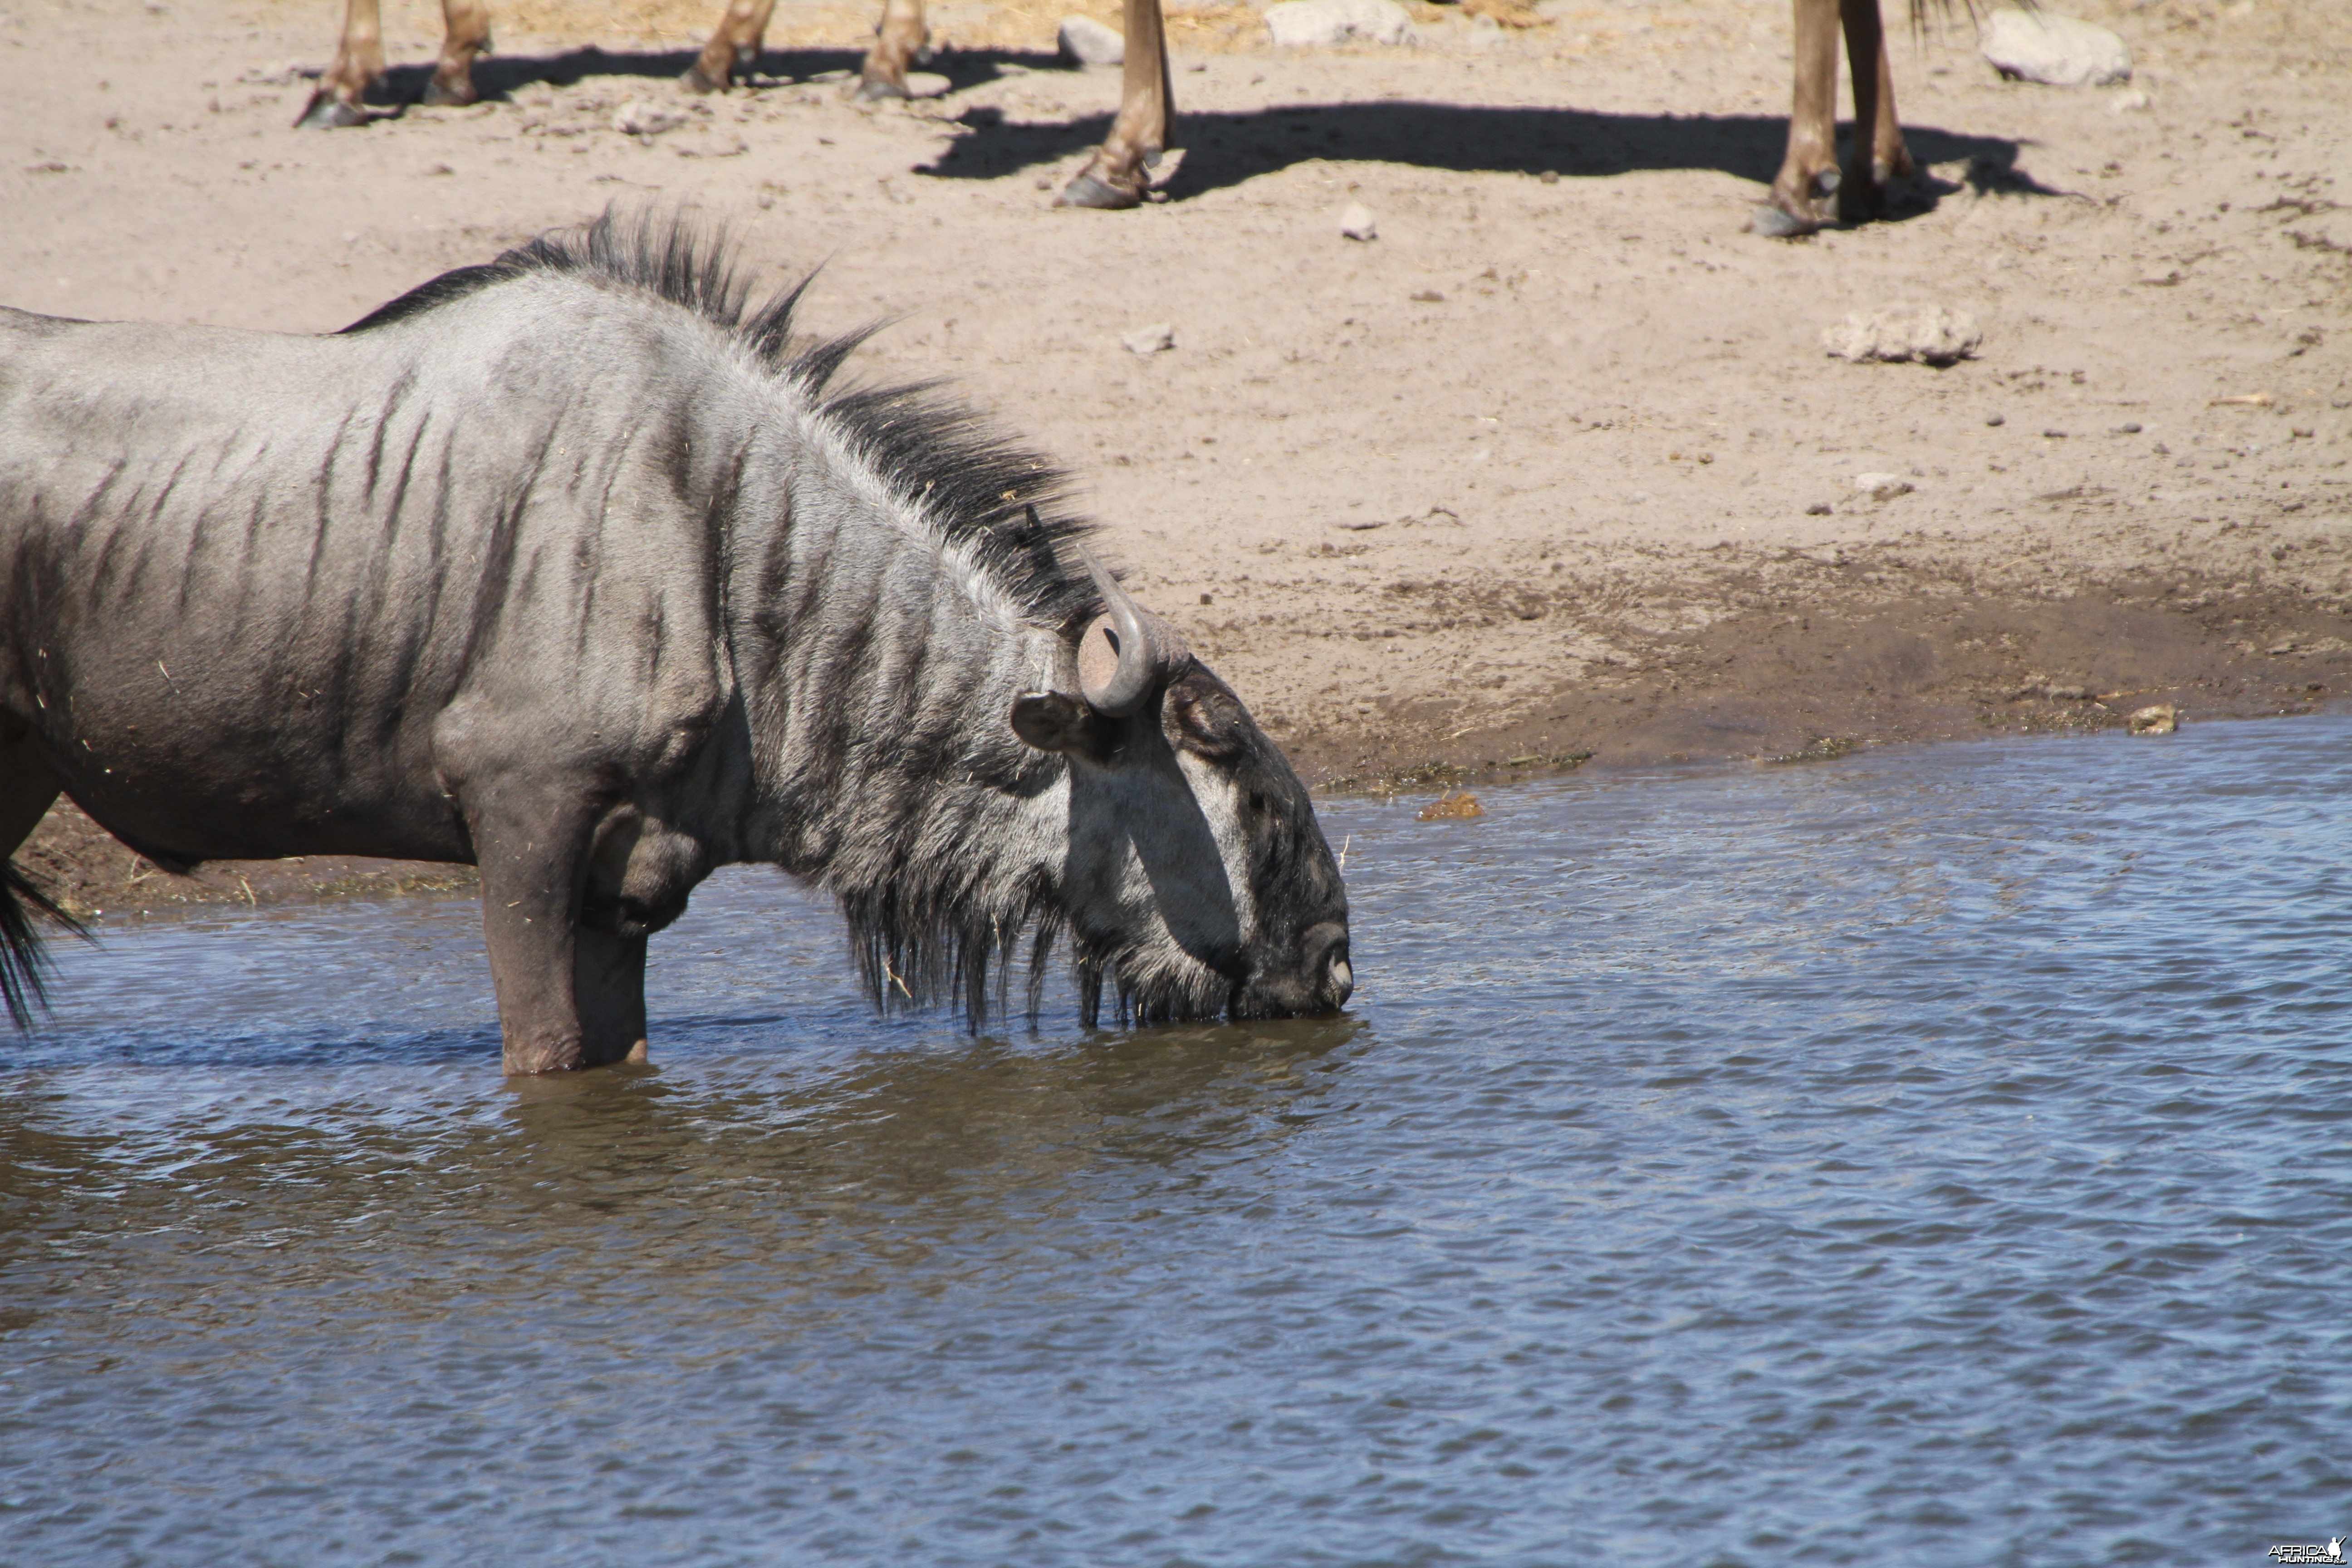 Blue Wildebeest at Etosha National Park National Park